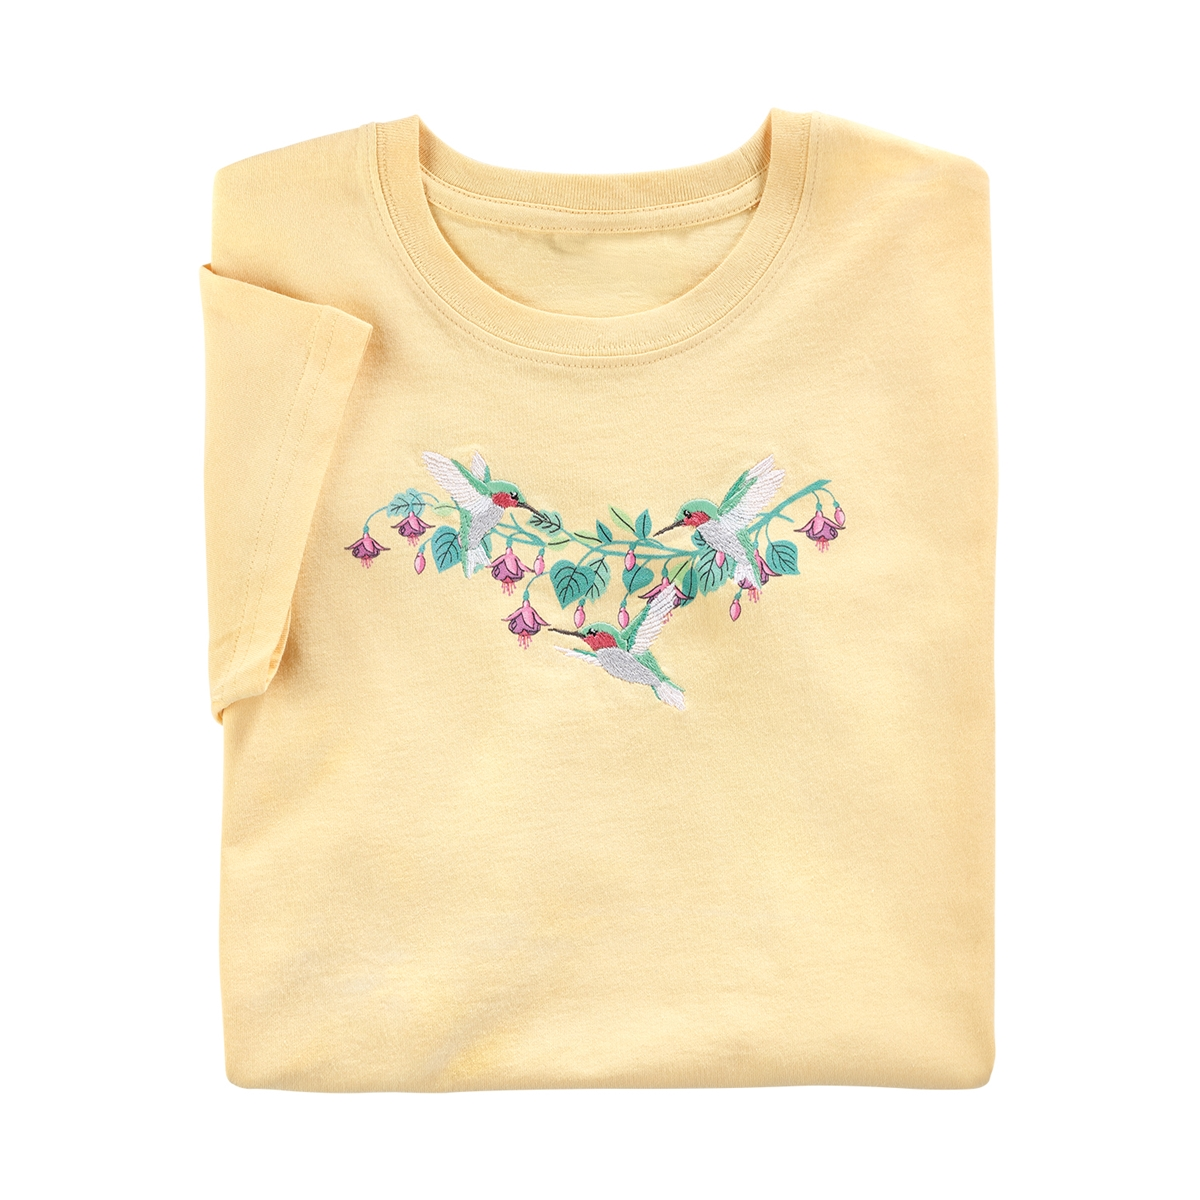 Playful Hummingbirds Tee